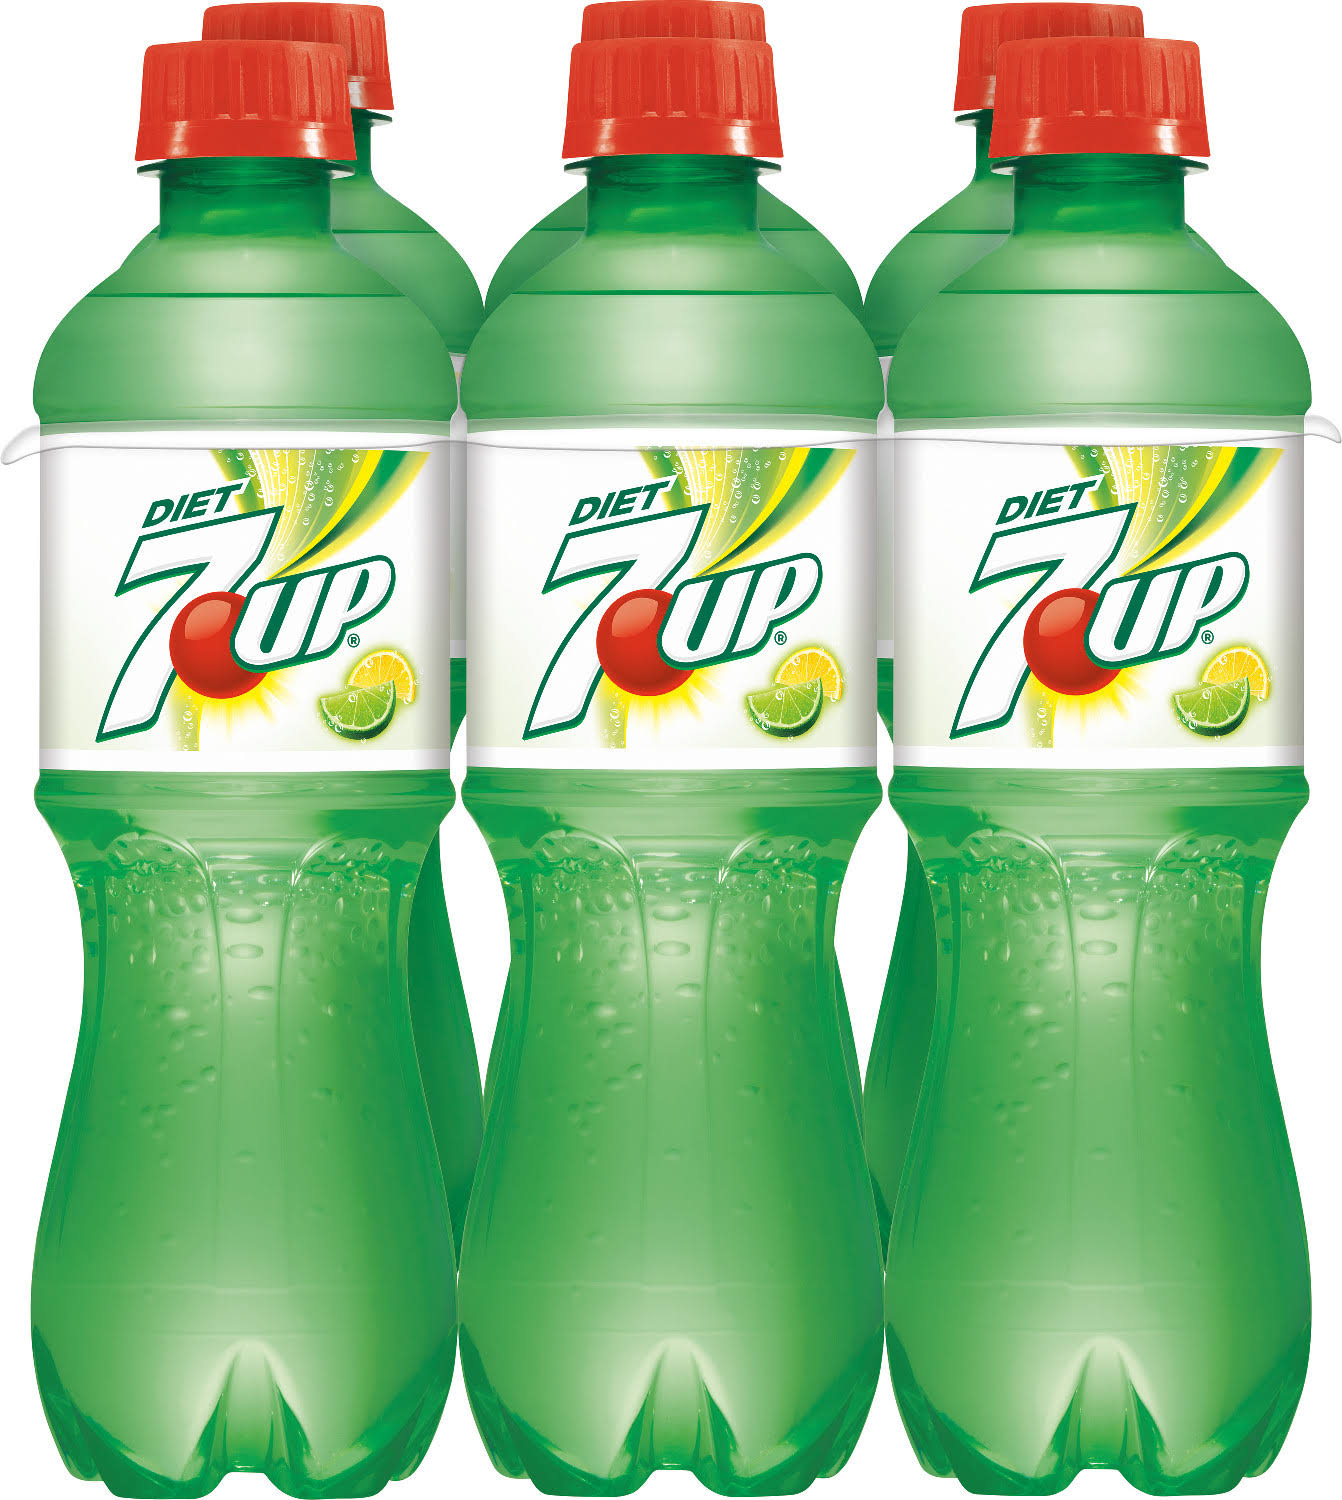 Diet 7UP - 16.9 fl oz, 6 pack